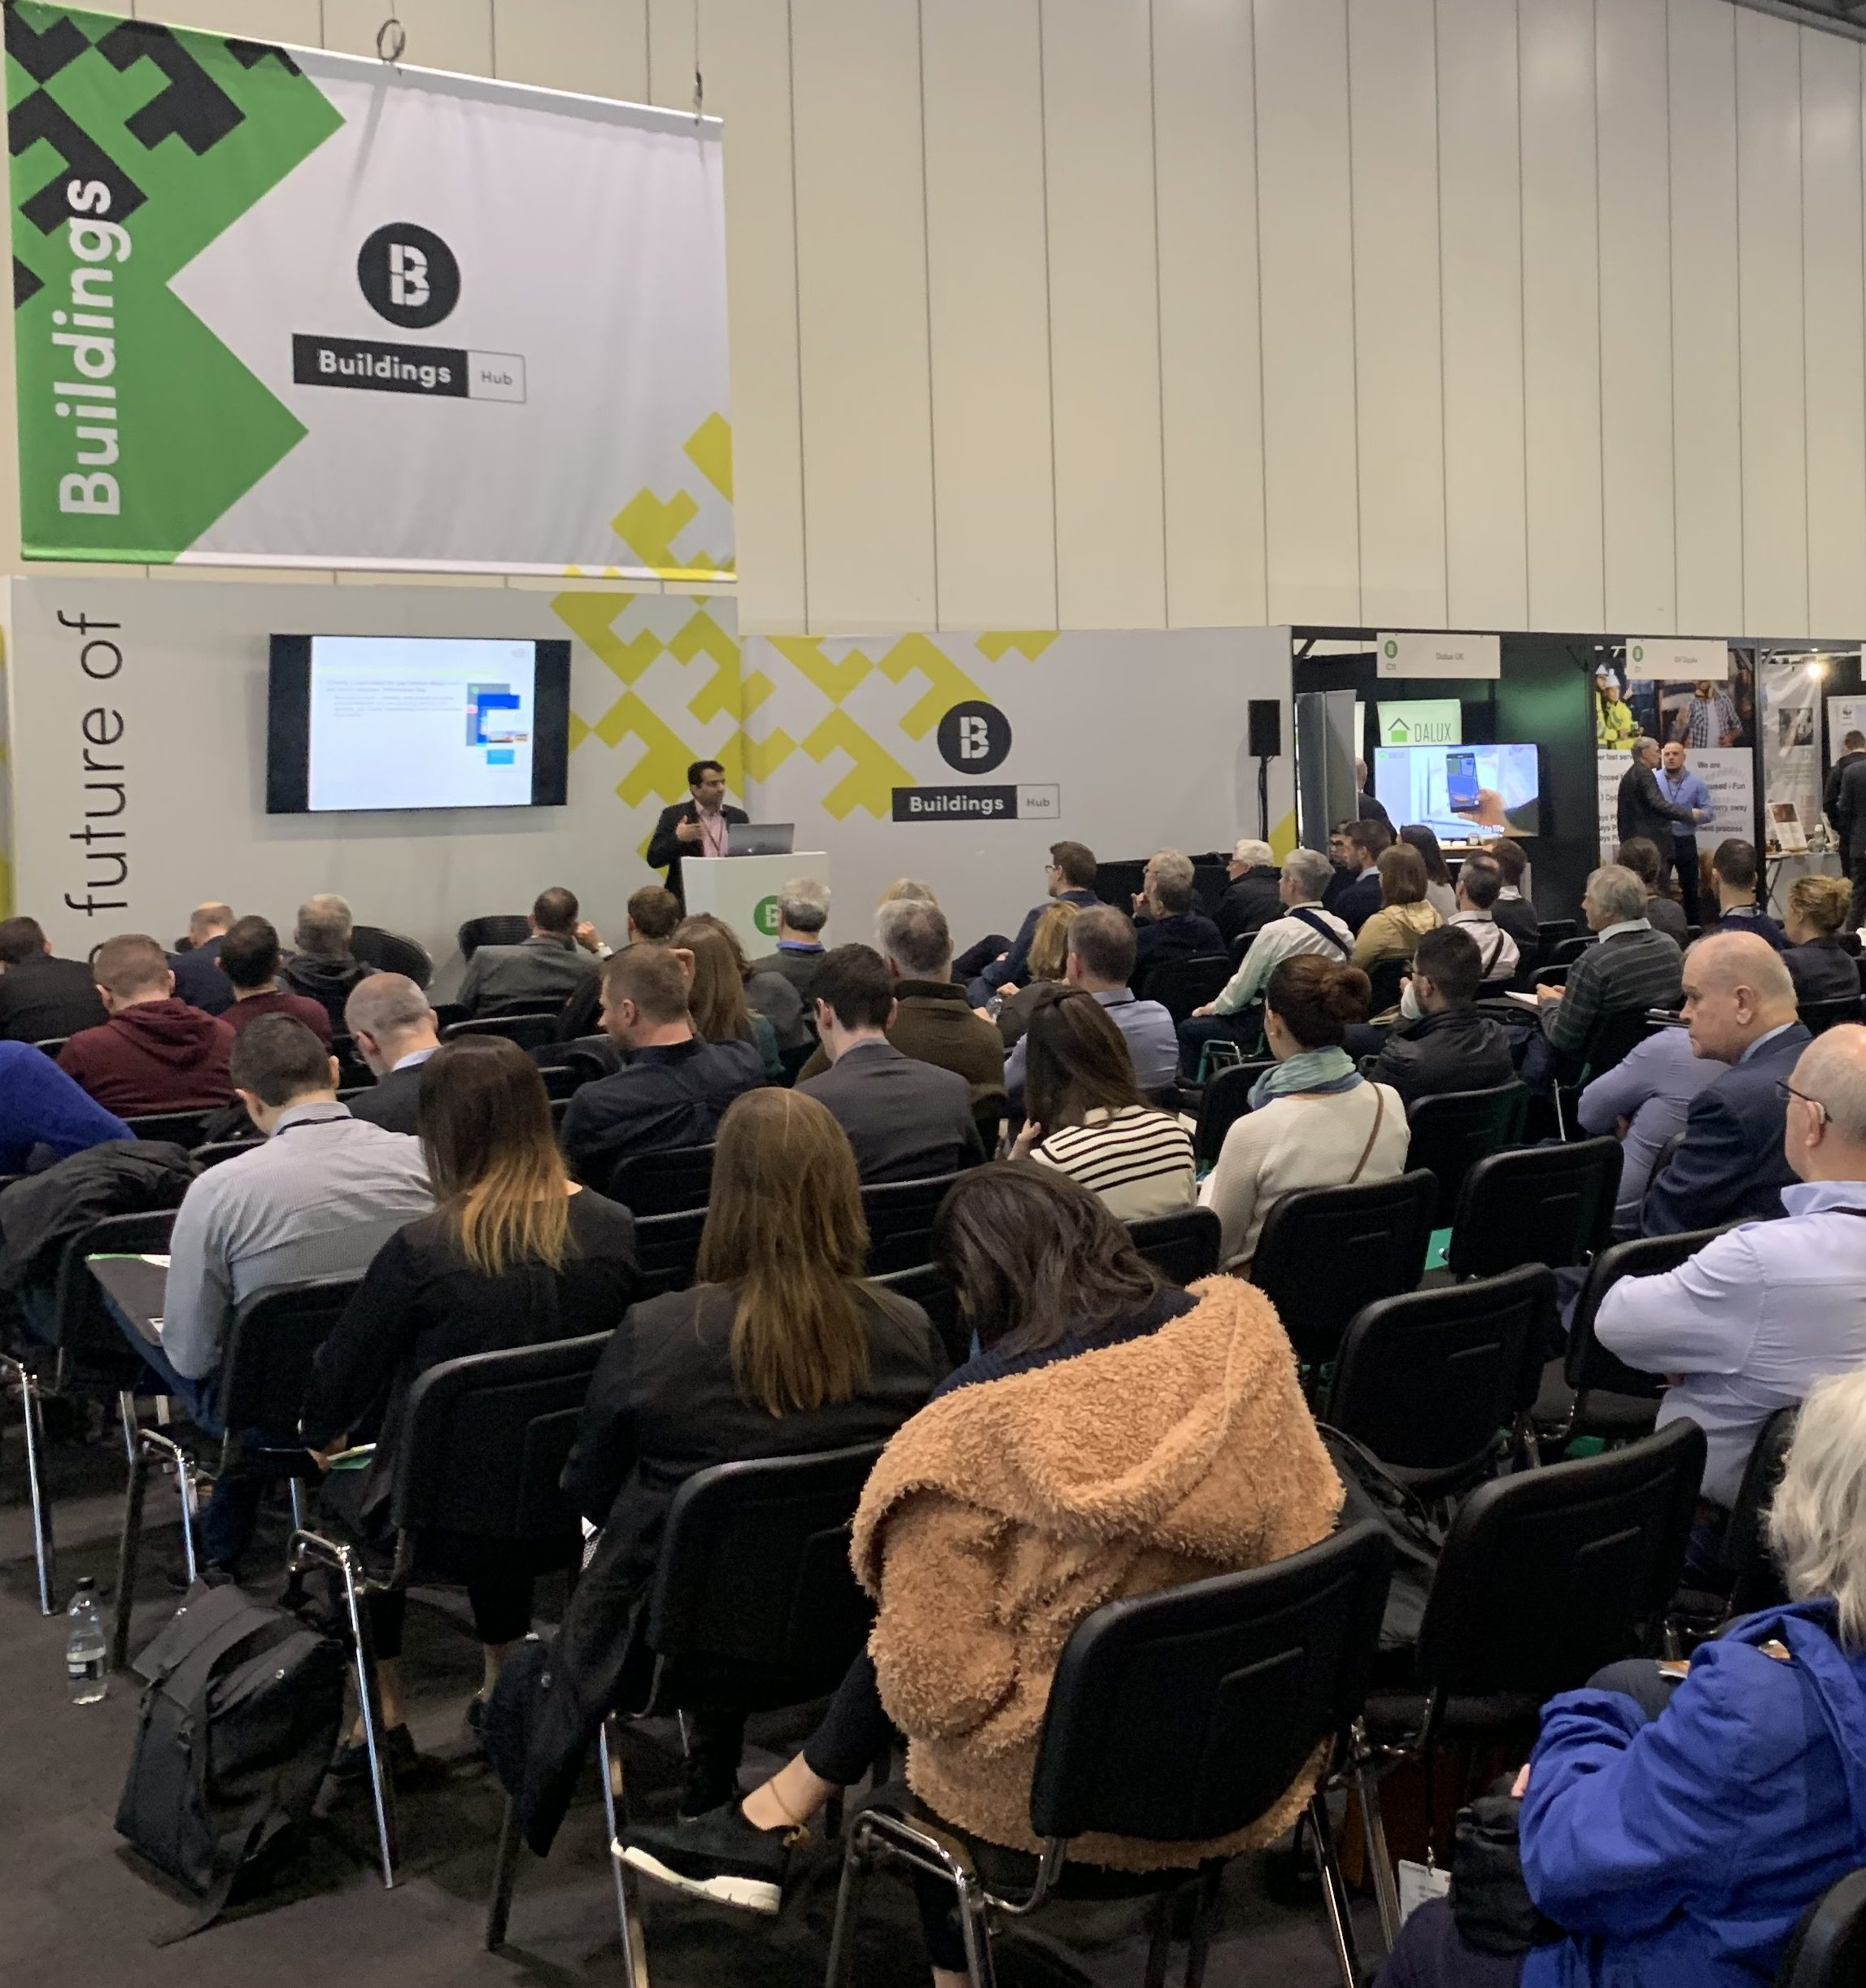 Videos from Futurebuild 2019 online